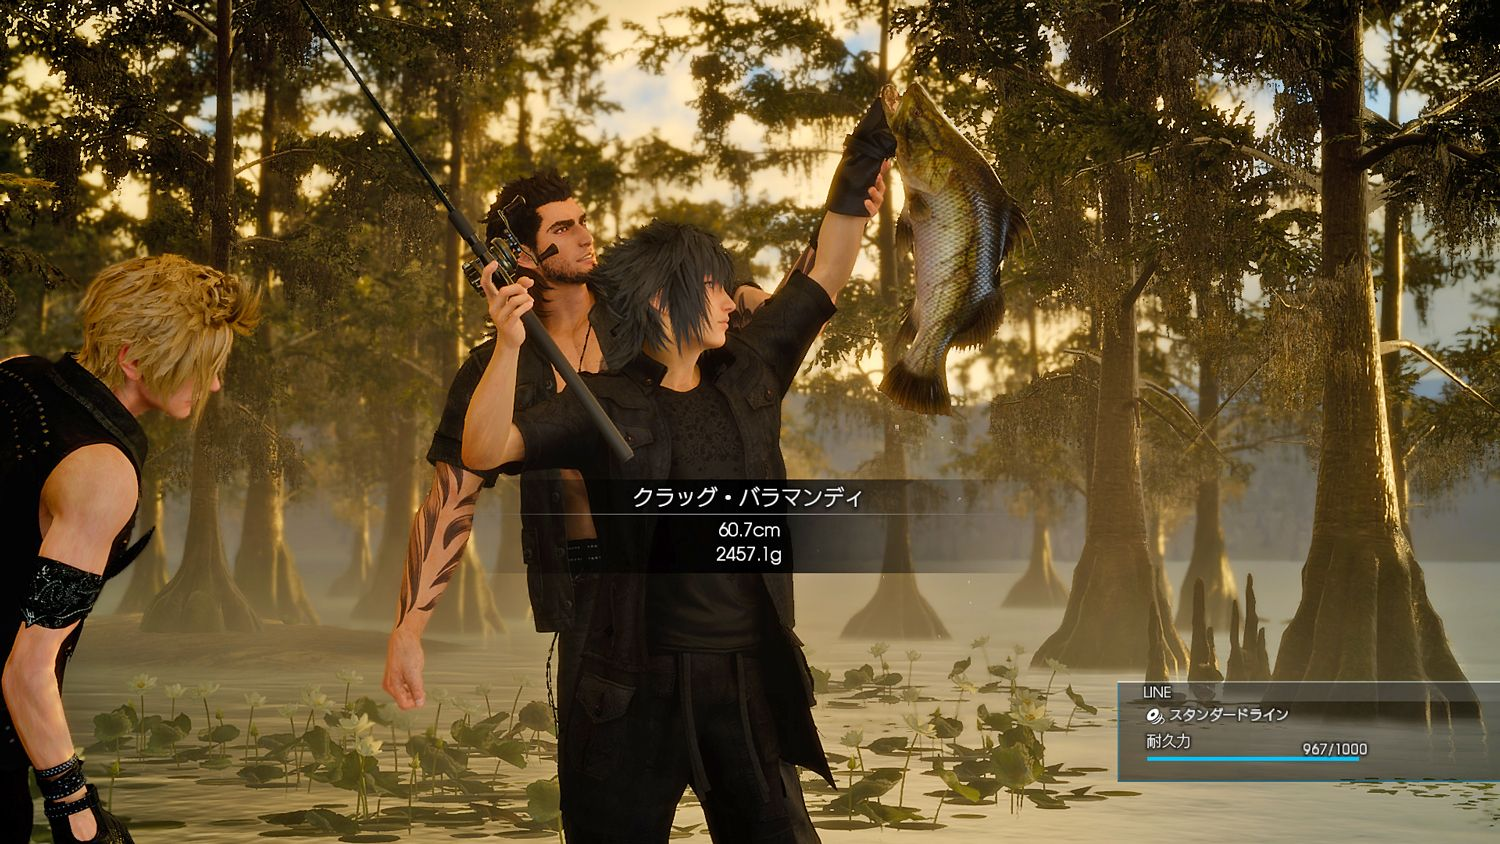 Did you know that 10 years after being announced #FinalFantasyXV will finally arrive? http://www.engadget.com/2016/03/30/final-fantasy-xv-release-date-anime-movie-pc/